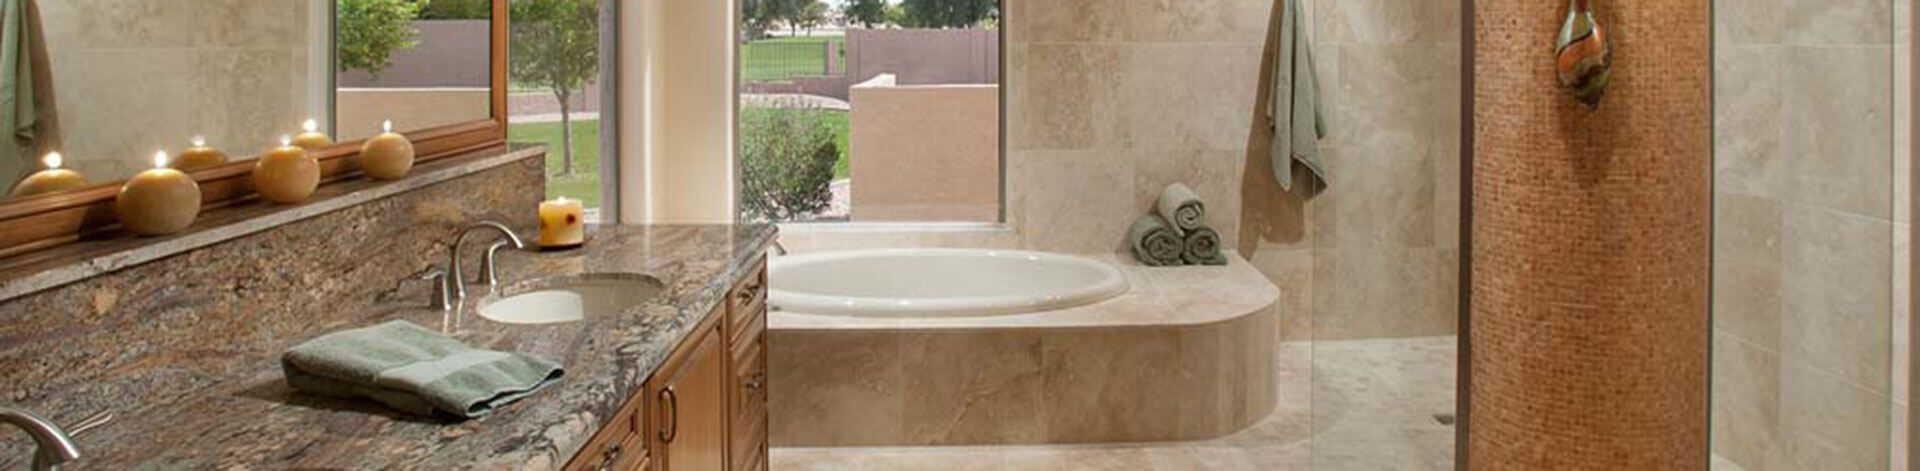 Bathroom Remodel Phoenix Bathroom Remodeling In Phoenix & Scottsdale  Republic West Remodeling